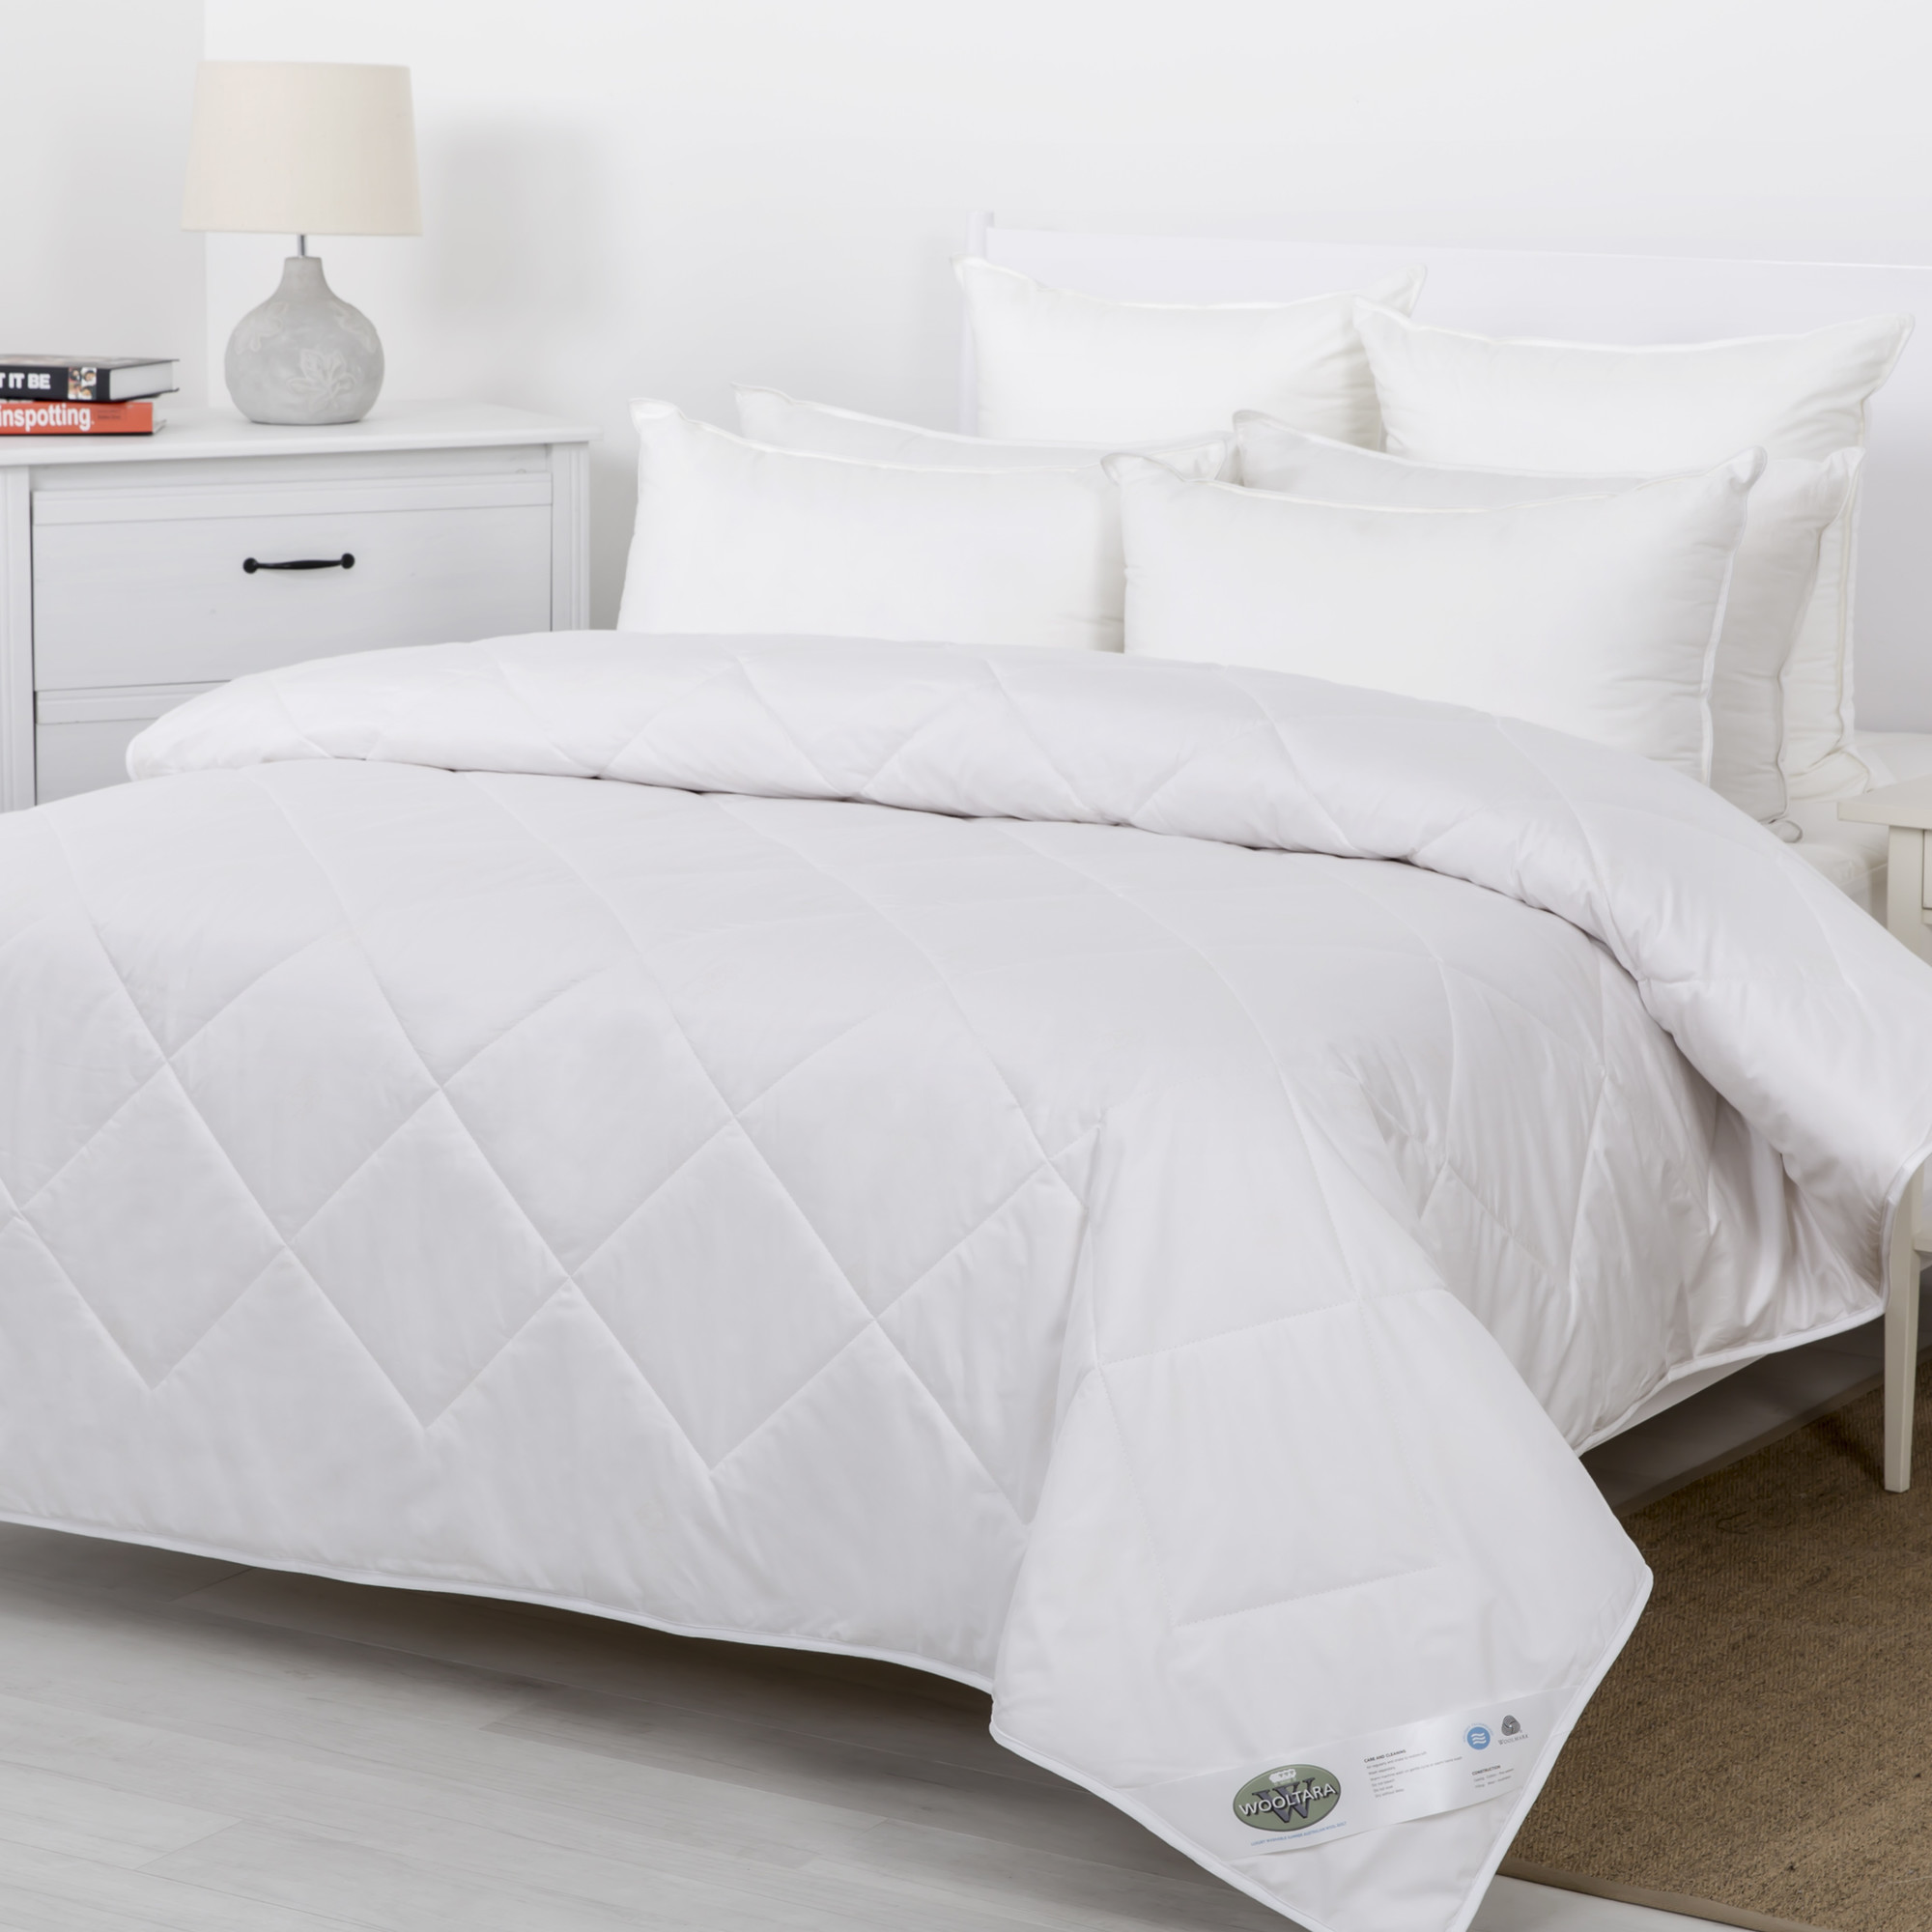 bedroom ideas cool to blanket the duvet summer for in lightweight how keep during down